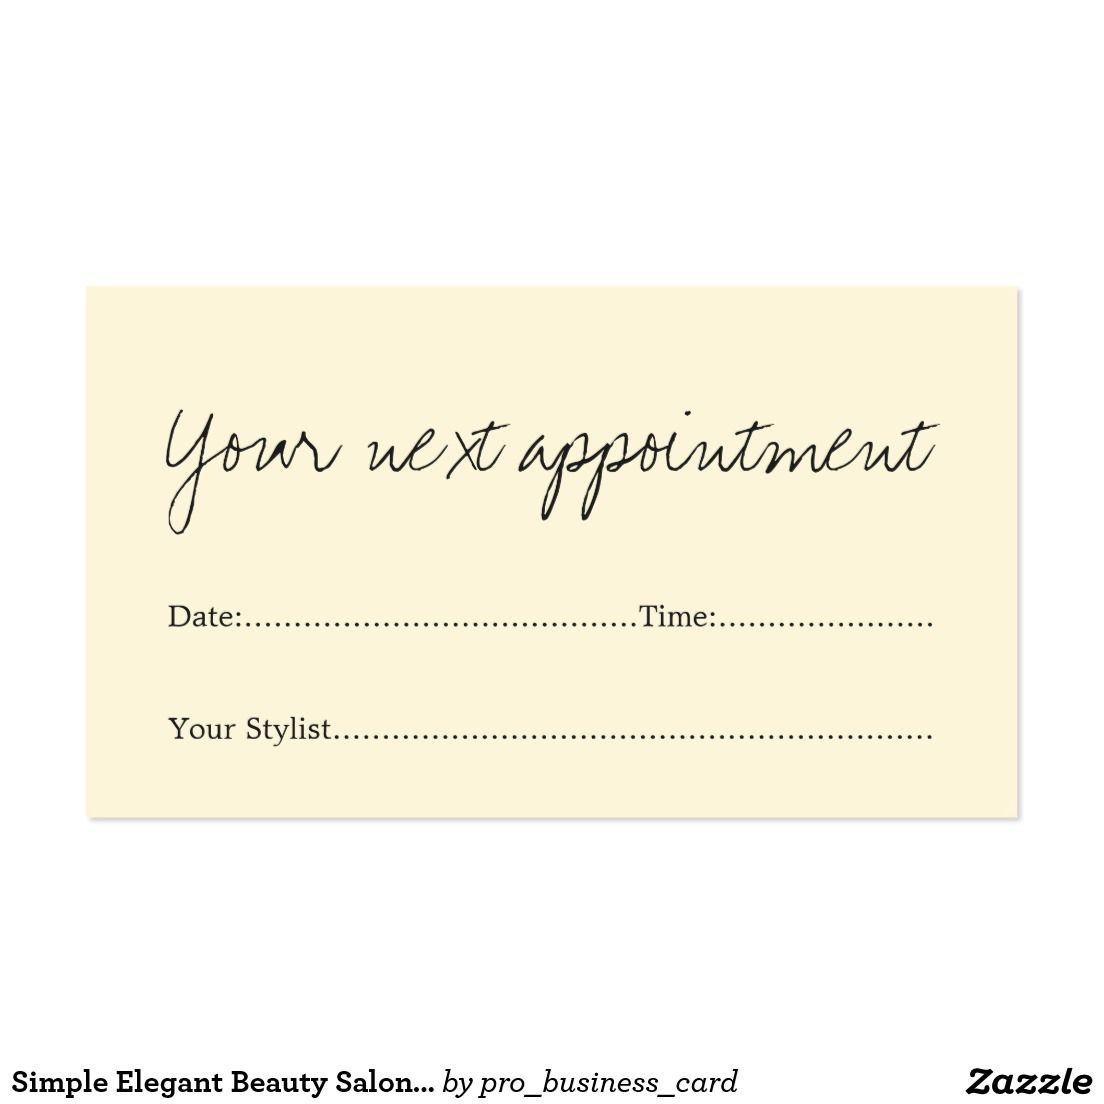 Simple Elegant Beauty Salon Appointment Card | Business cards